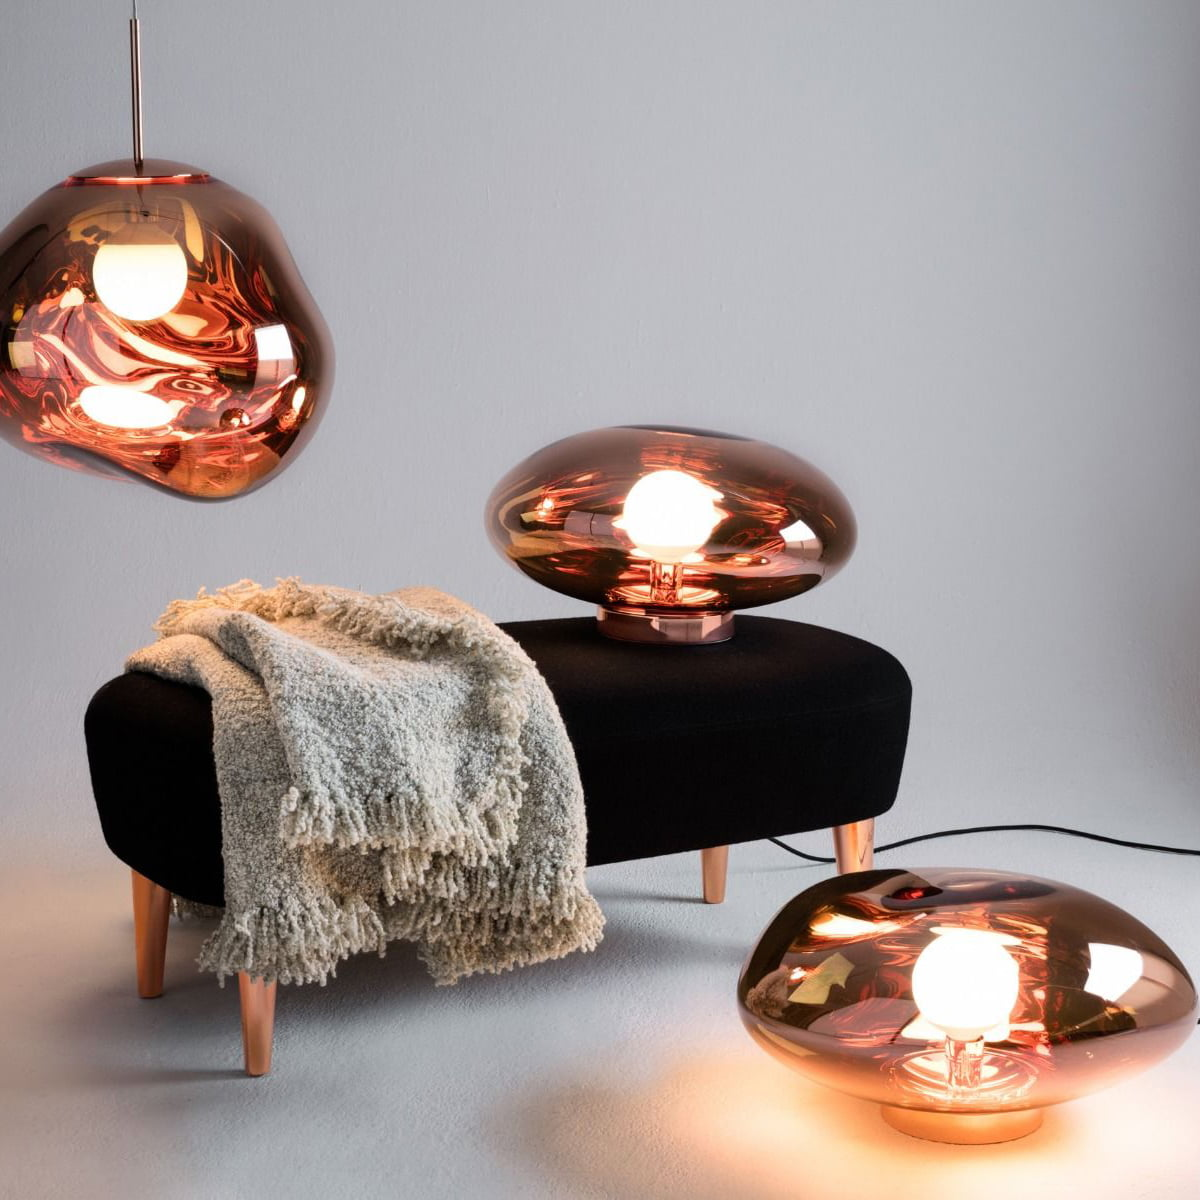 table lamps Top 5 Table Lamps From Luxury Brands melt surface Tom dixon